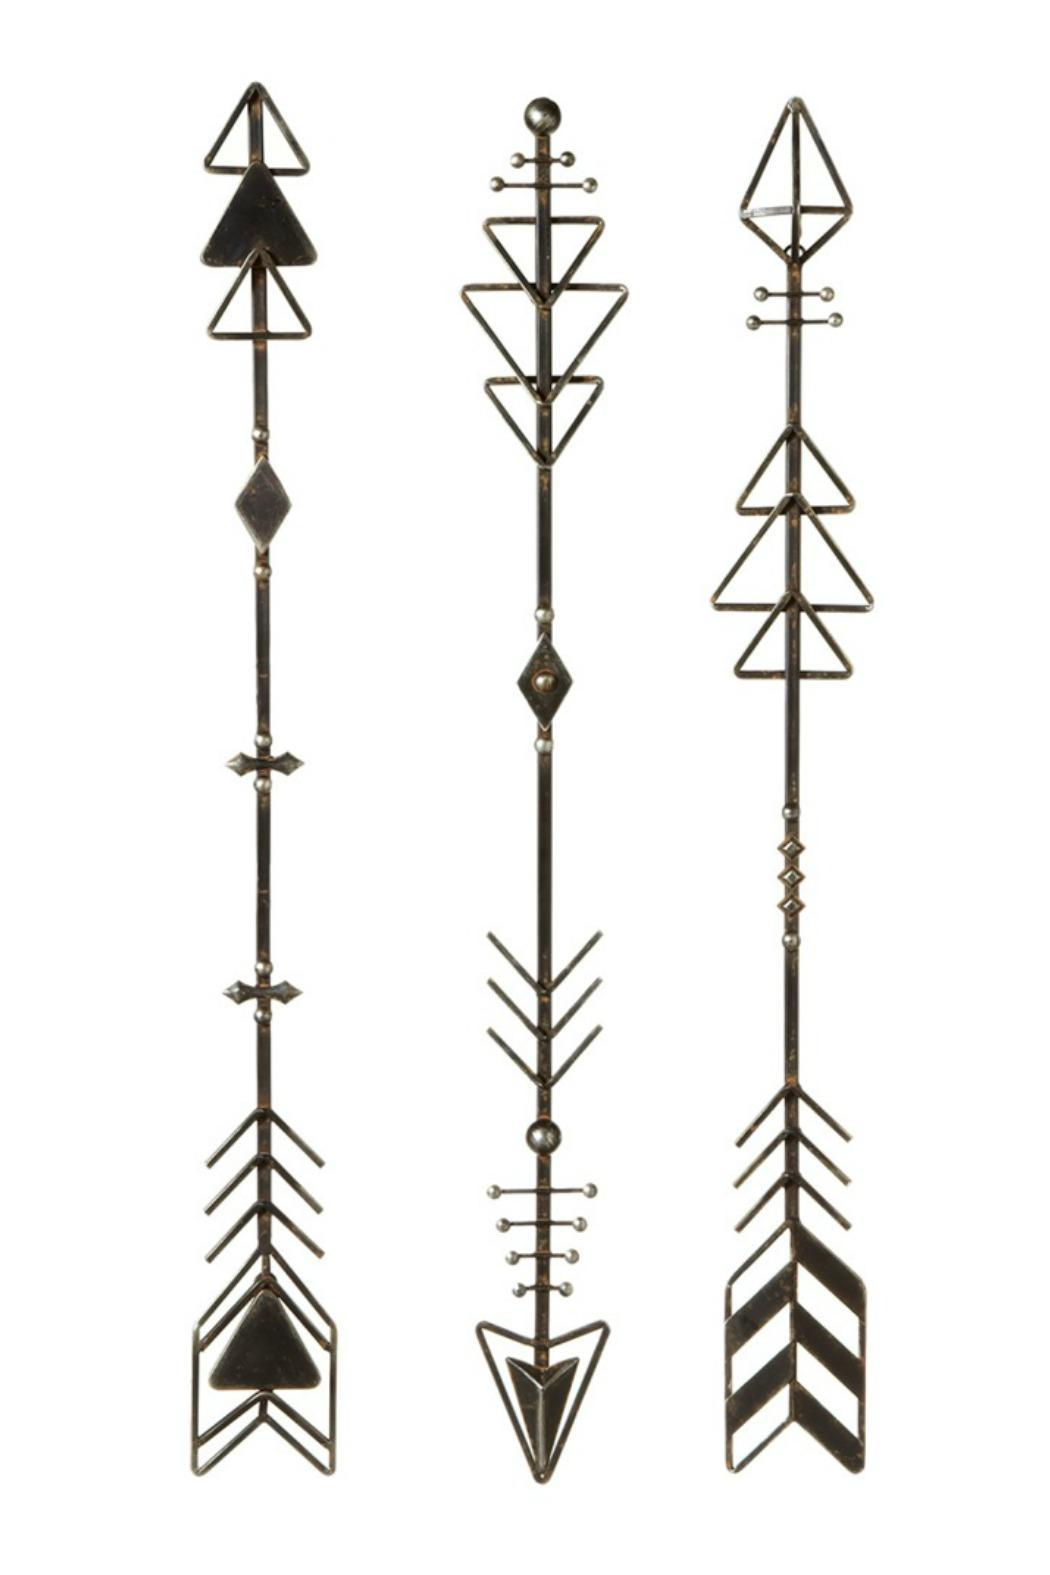 midwest cbk decorative arrow set from canada by james PowerPoint Emergency Collage Clip Art Emergency Collage Clip Art Illustration